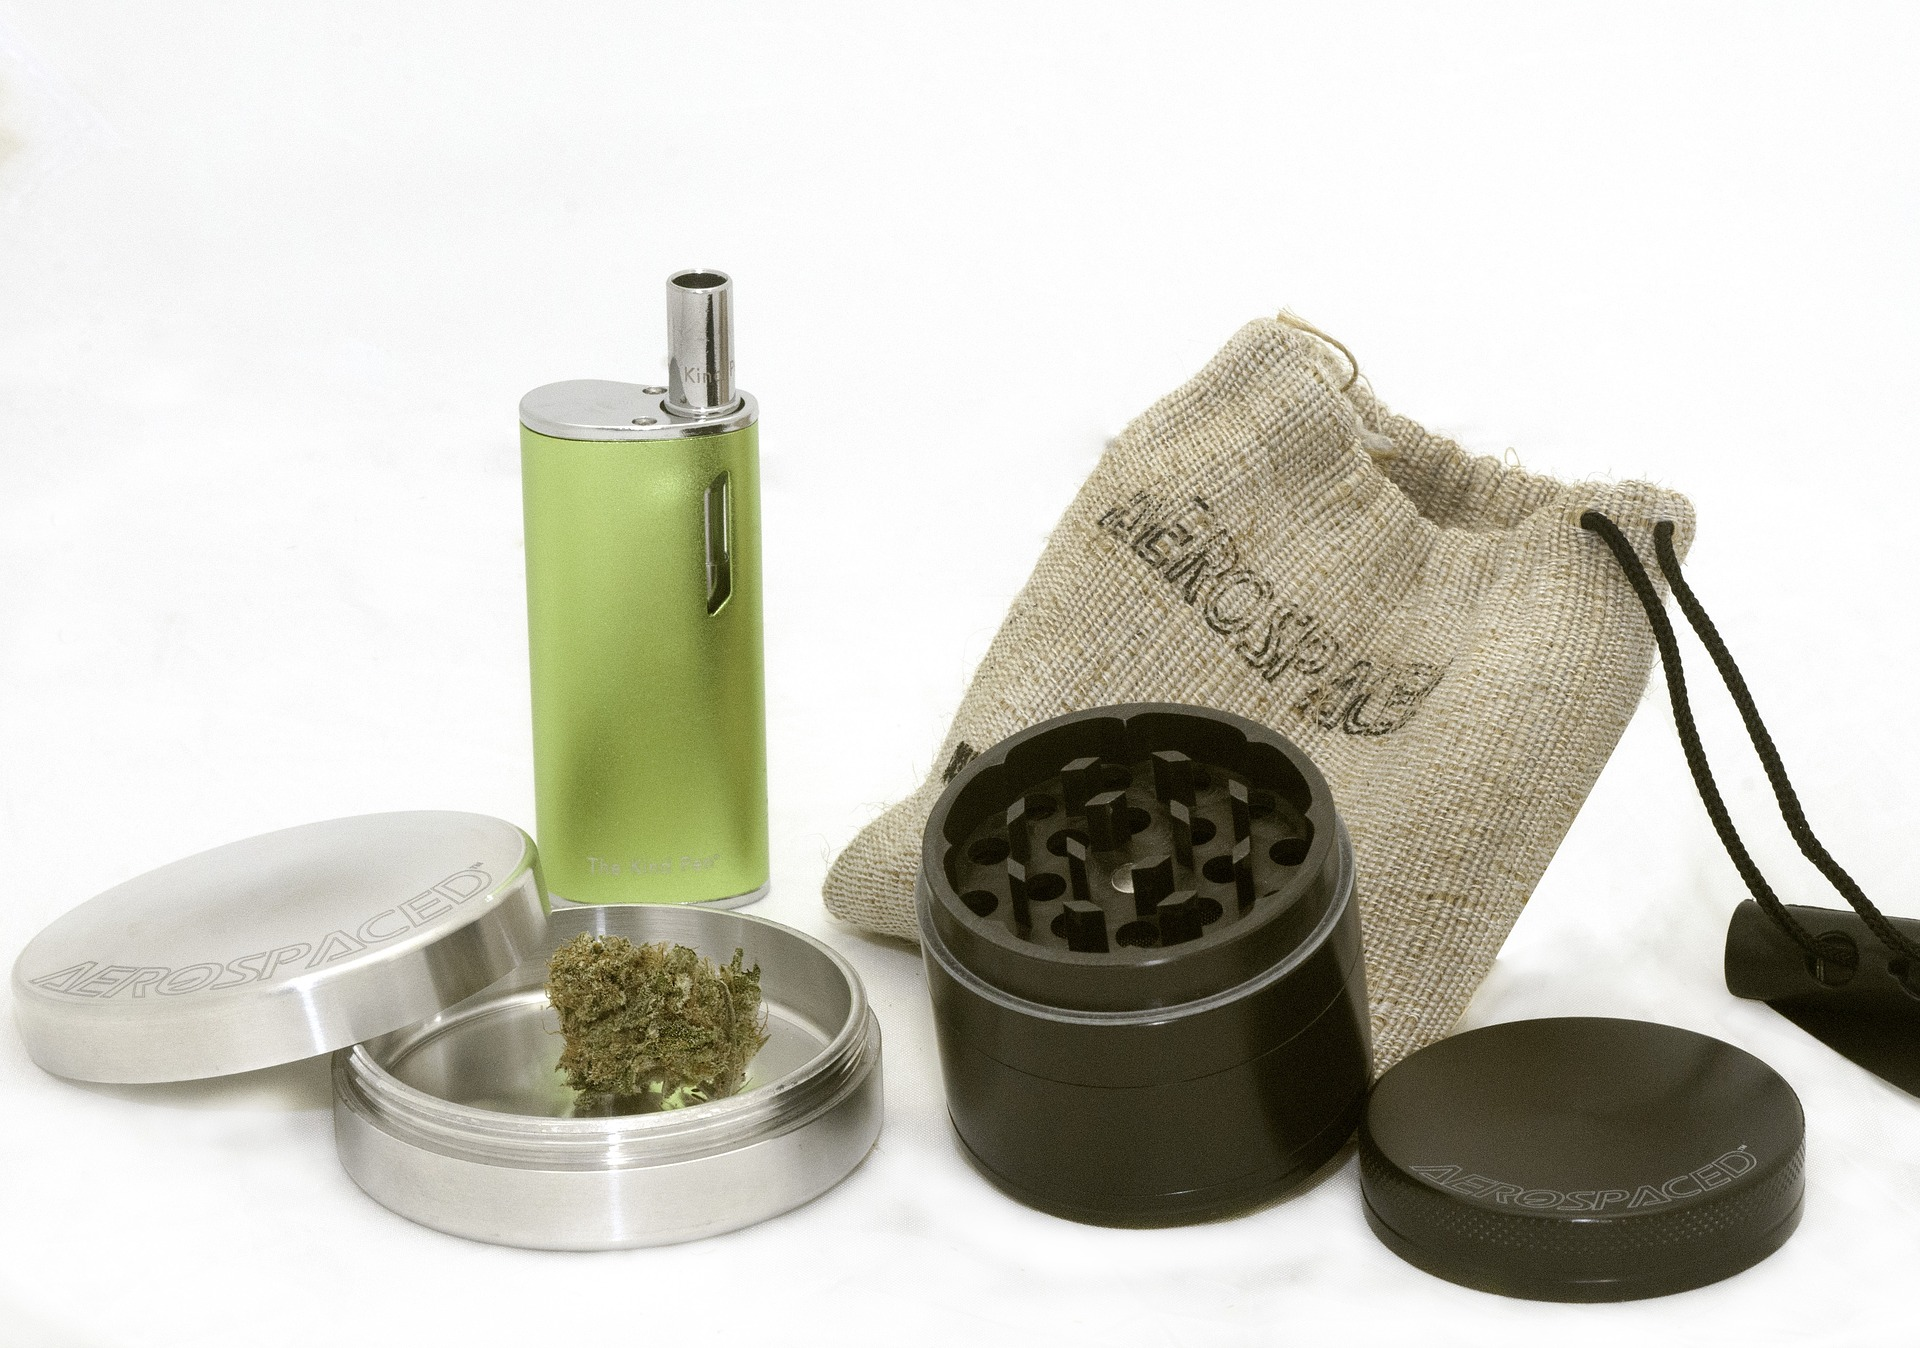 Things to Look Up While Buying Cheap and Quality Vaporizer